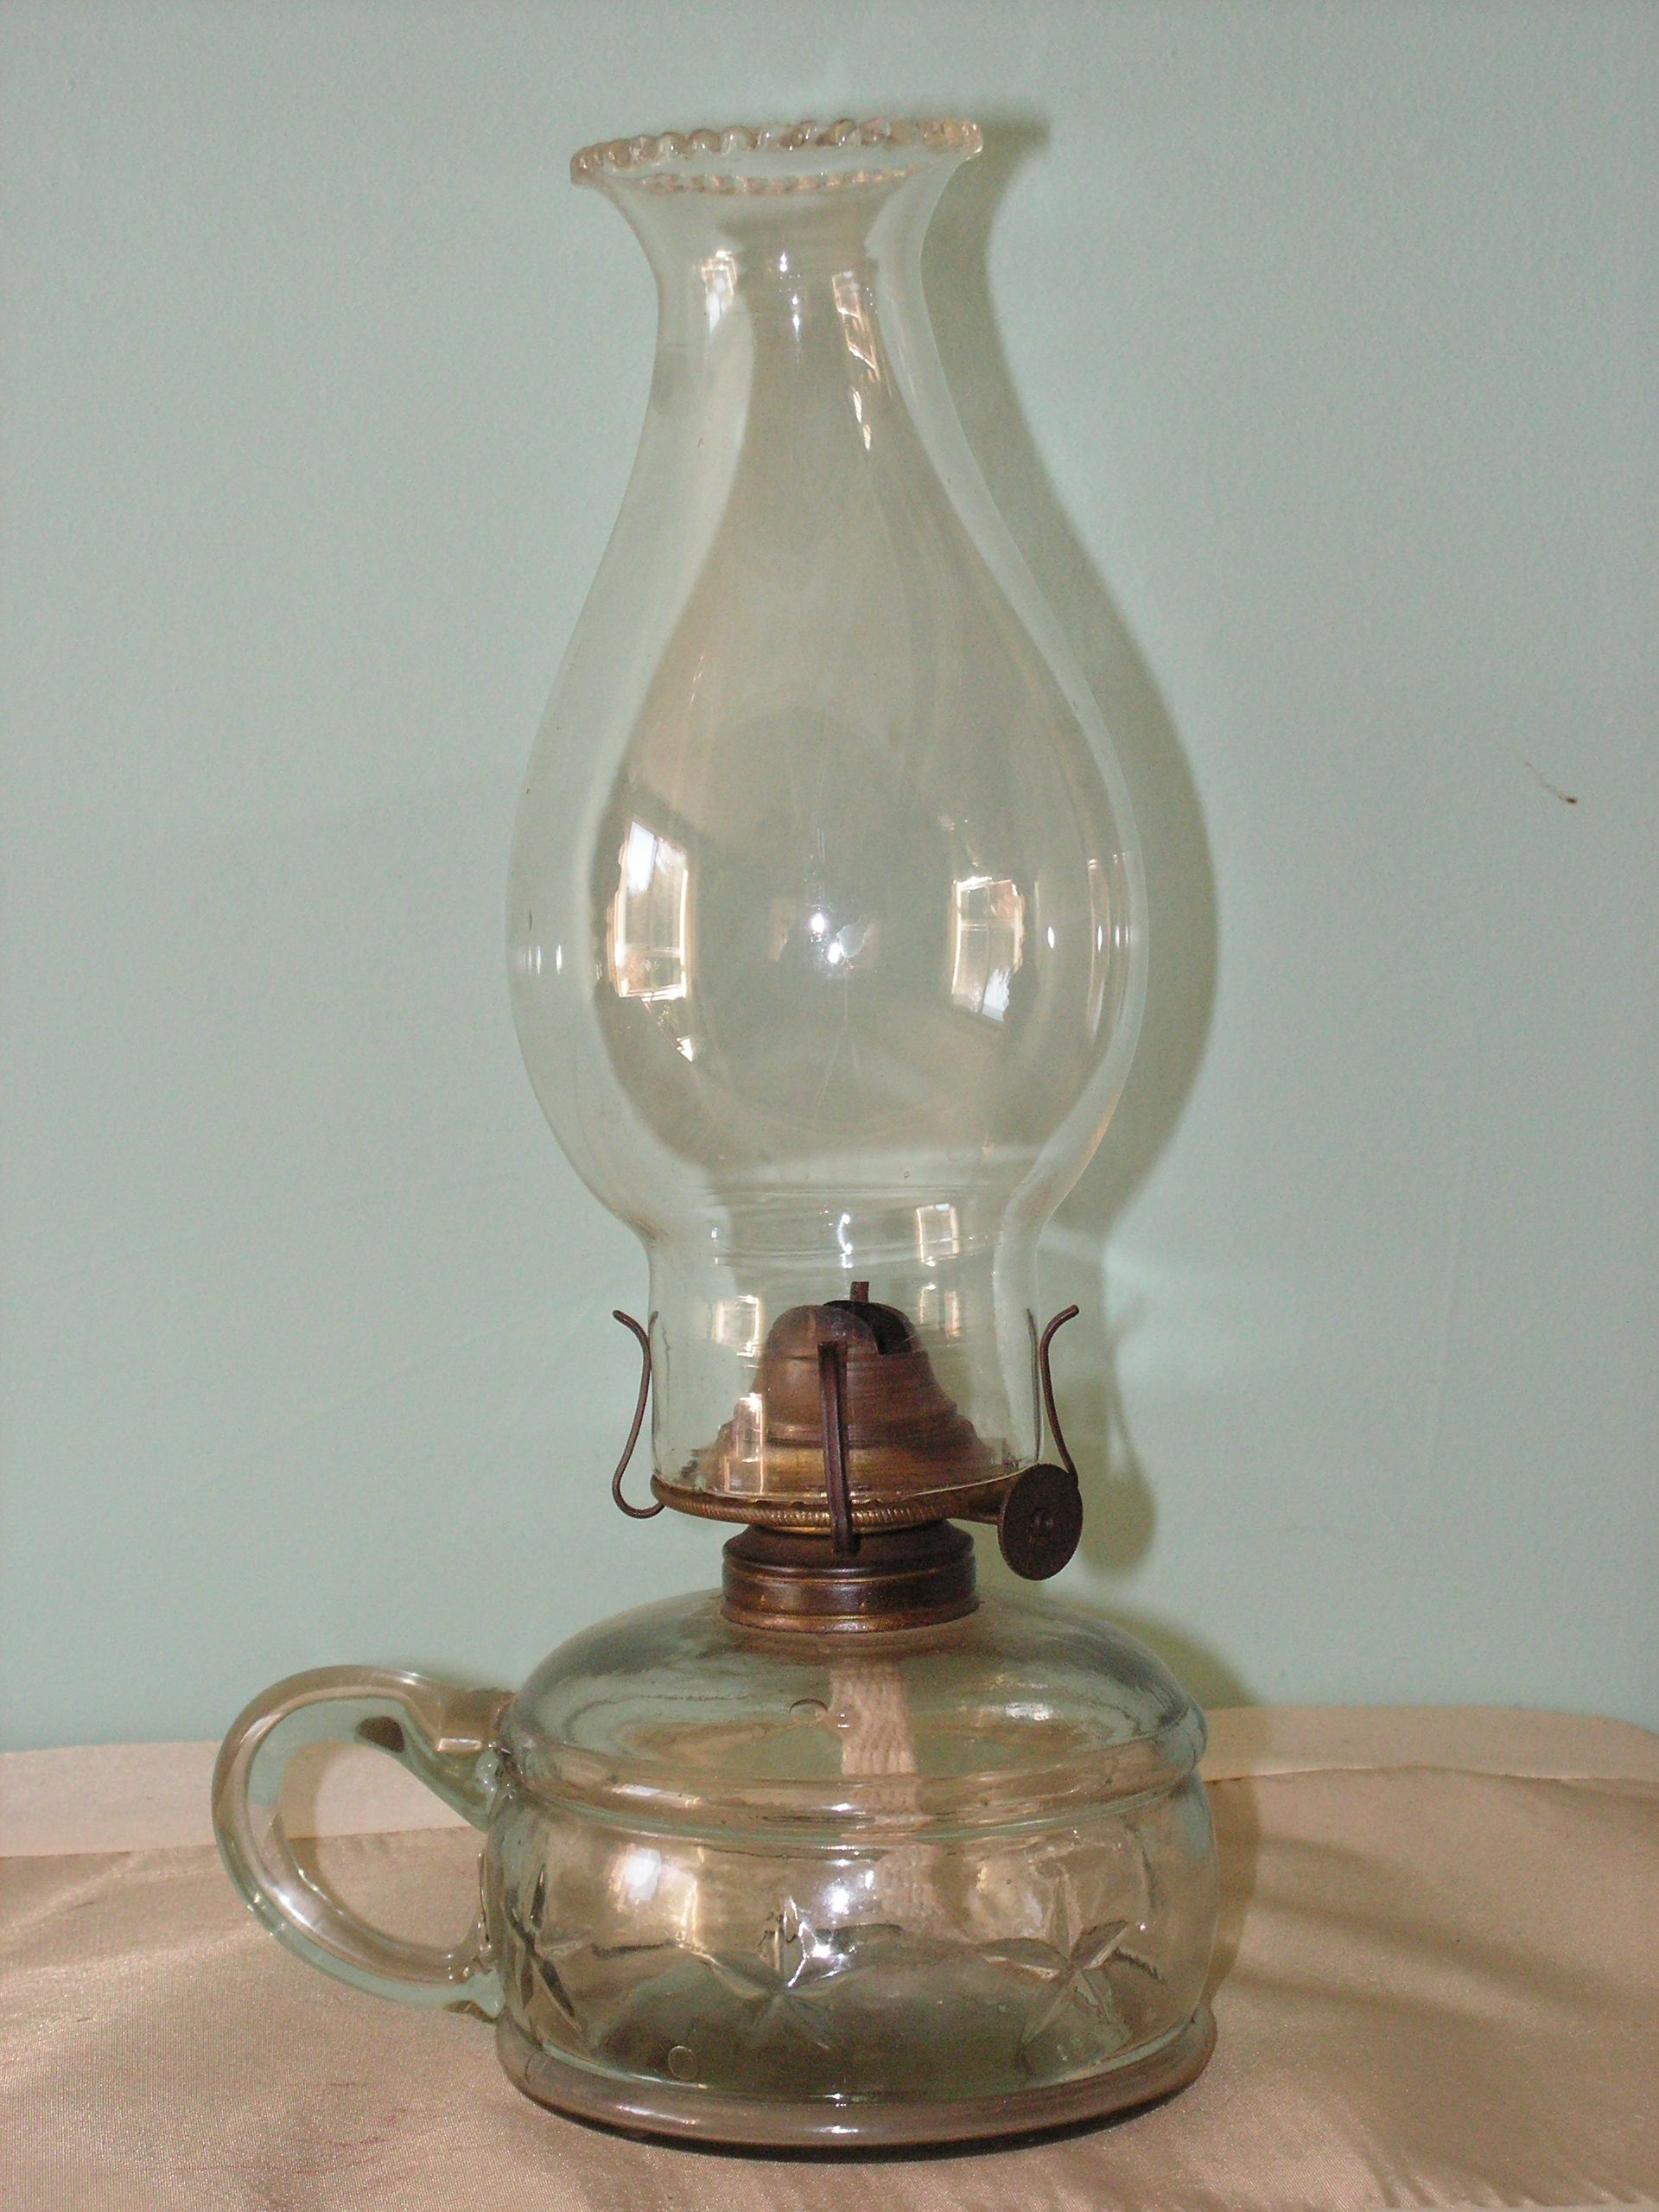 Glass Hand Lamp P A Eagle Burner This Flat Wick Lamp Has The Correct Style Of Chimney Known As The Vienna Pattern Antique Lamps Oil Lamps Lantern Lights